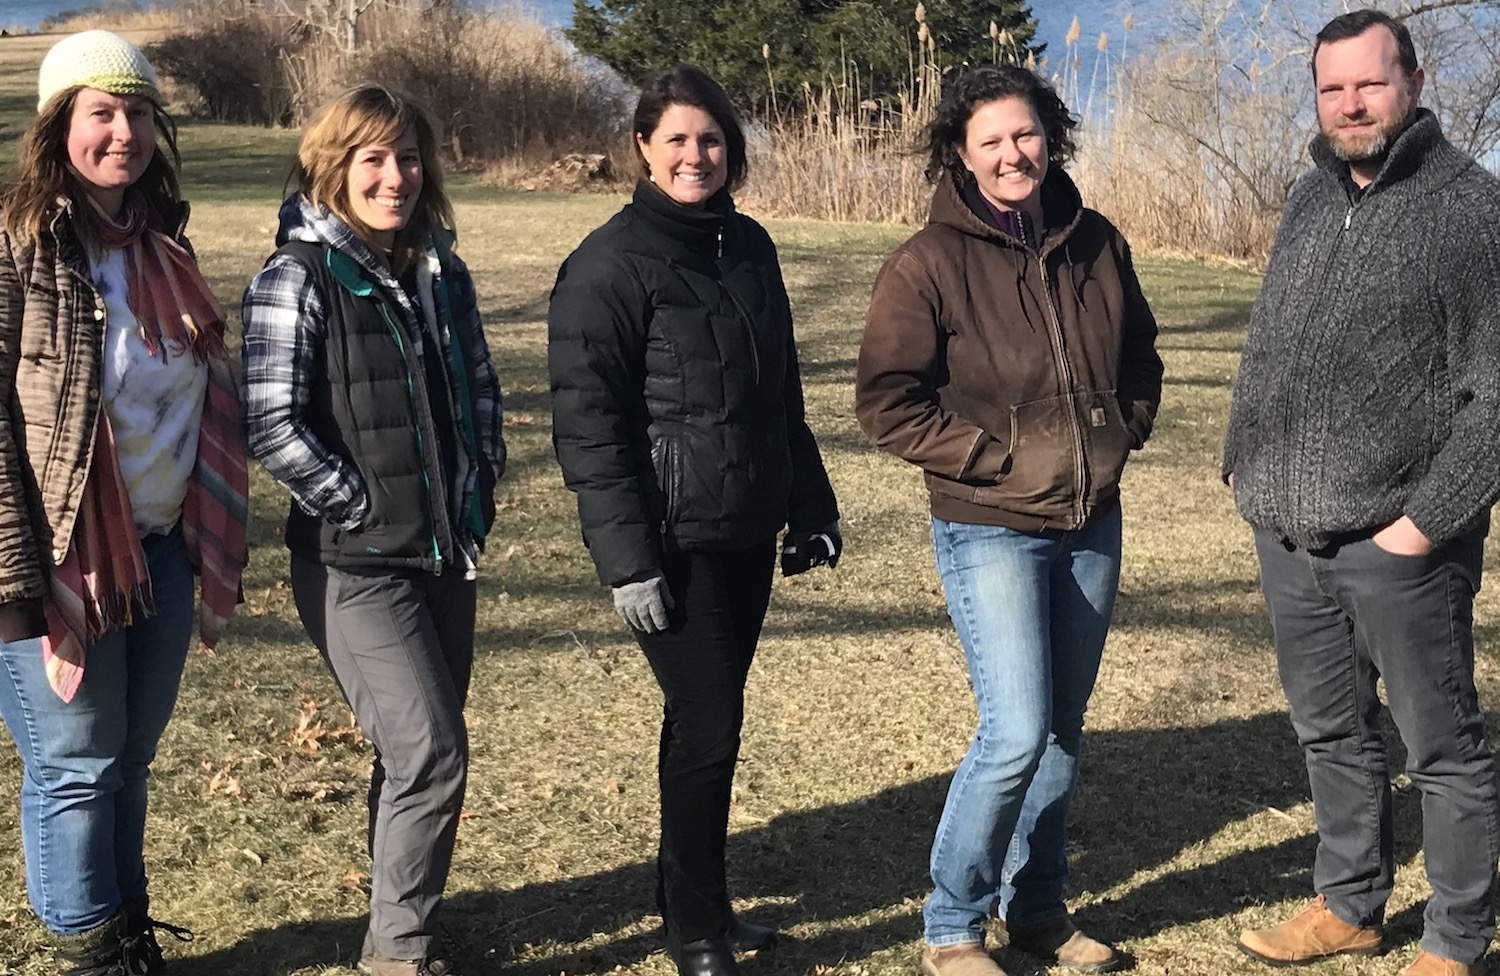 Creekside at The Manor House (left to right): Lily Dougherty-Johnson and Cristina Cosentino (Acabonac Farms), Tracy McCarthy and Jocelyn Craig (Sylvester Manor)and Stephen Skrenta (Acabonac Farms).